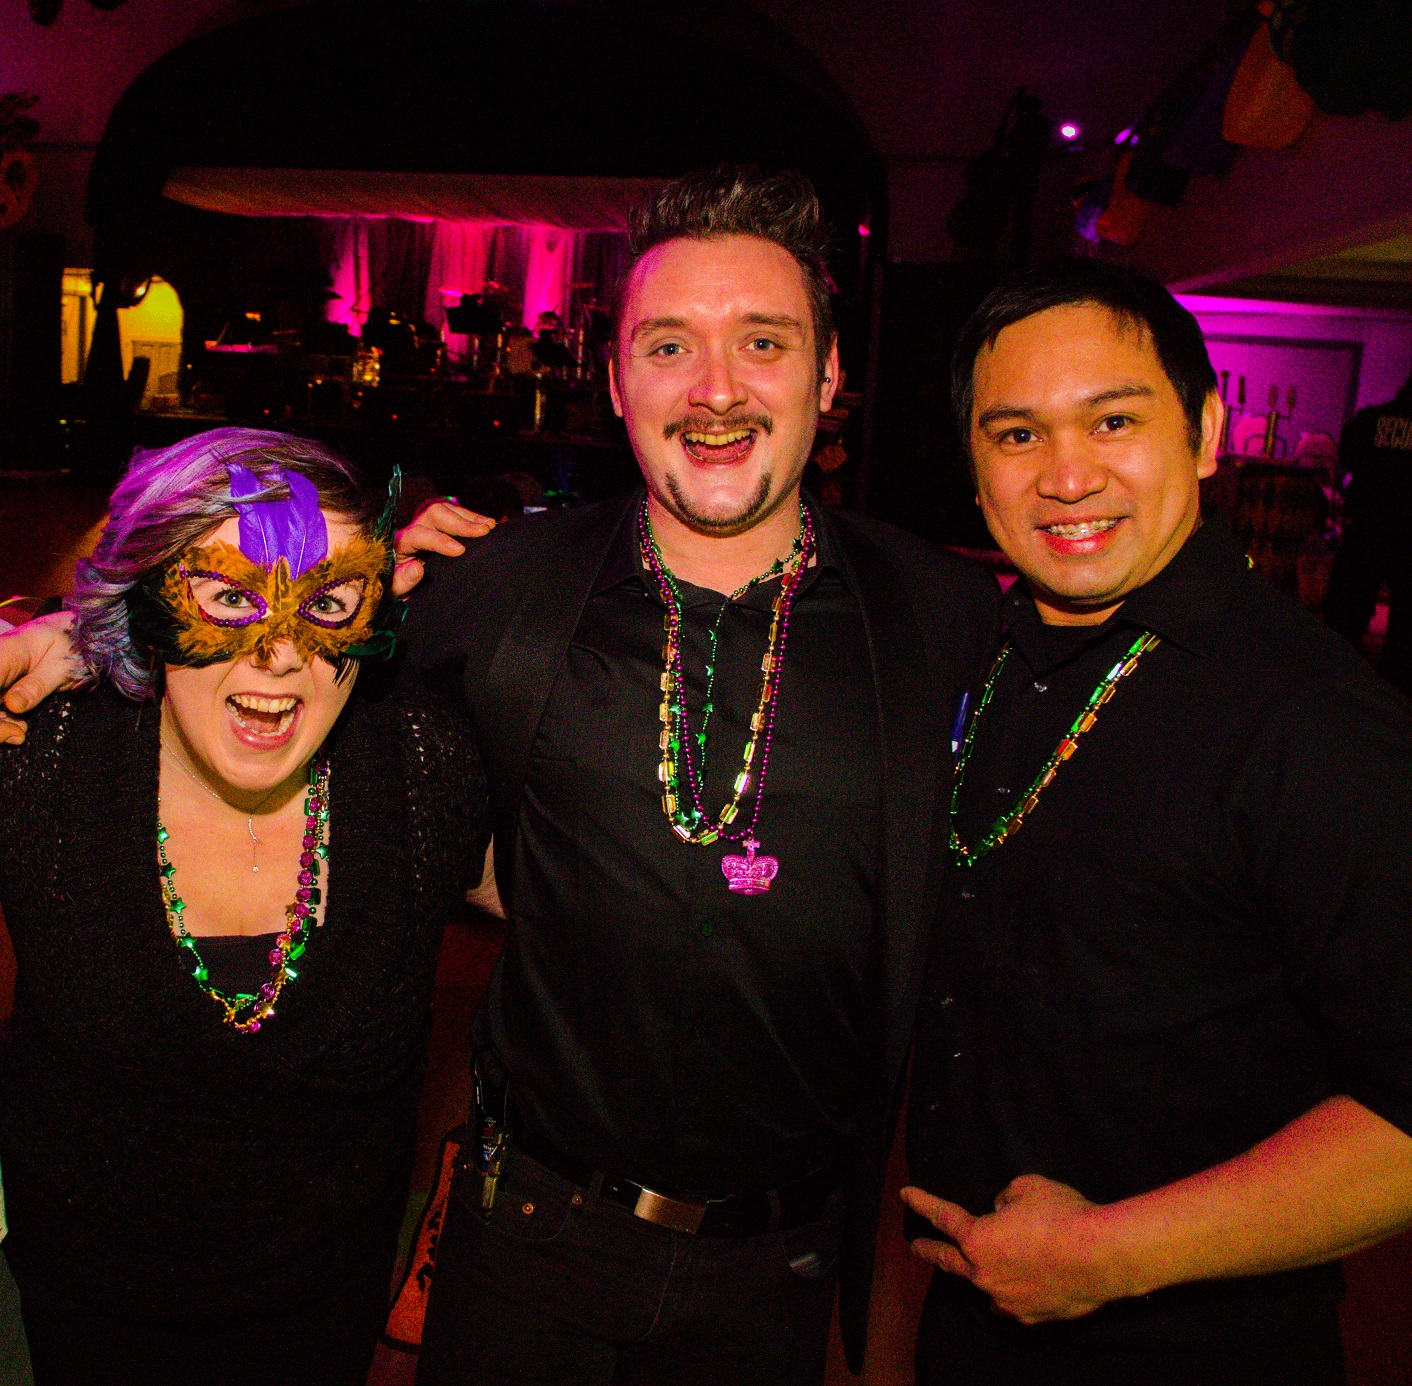 3 of our amazing bartenders from 2017 event